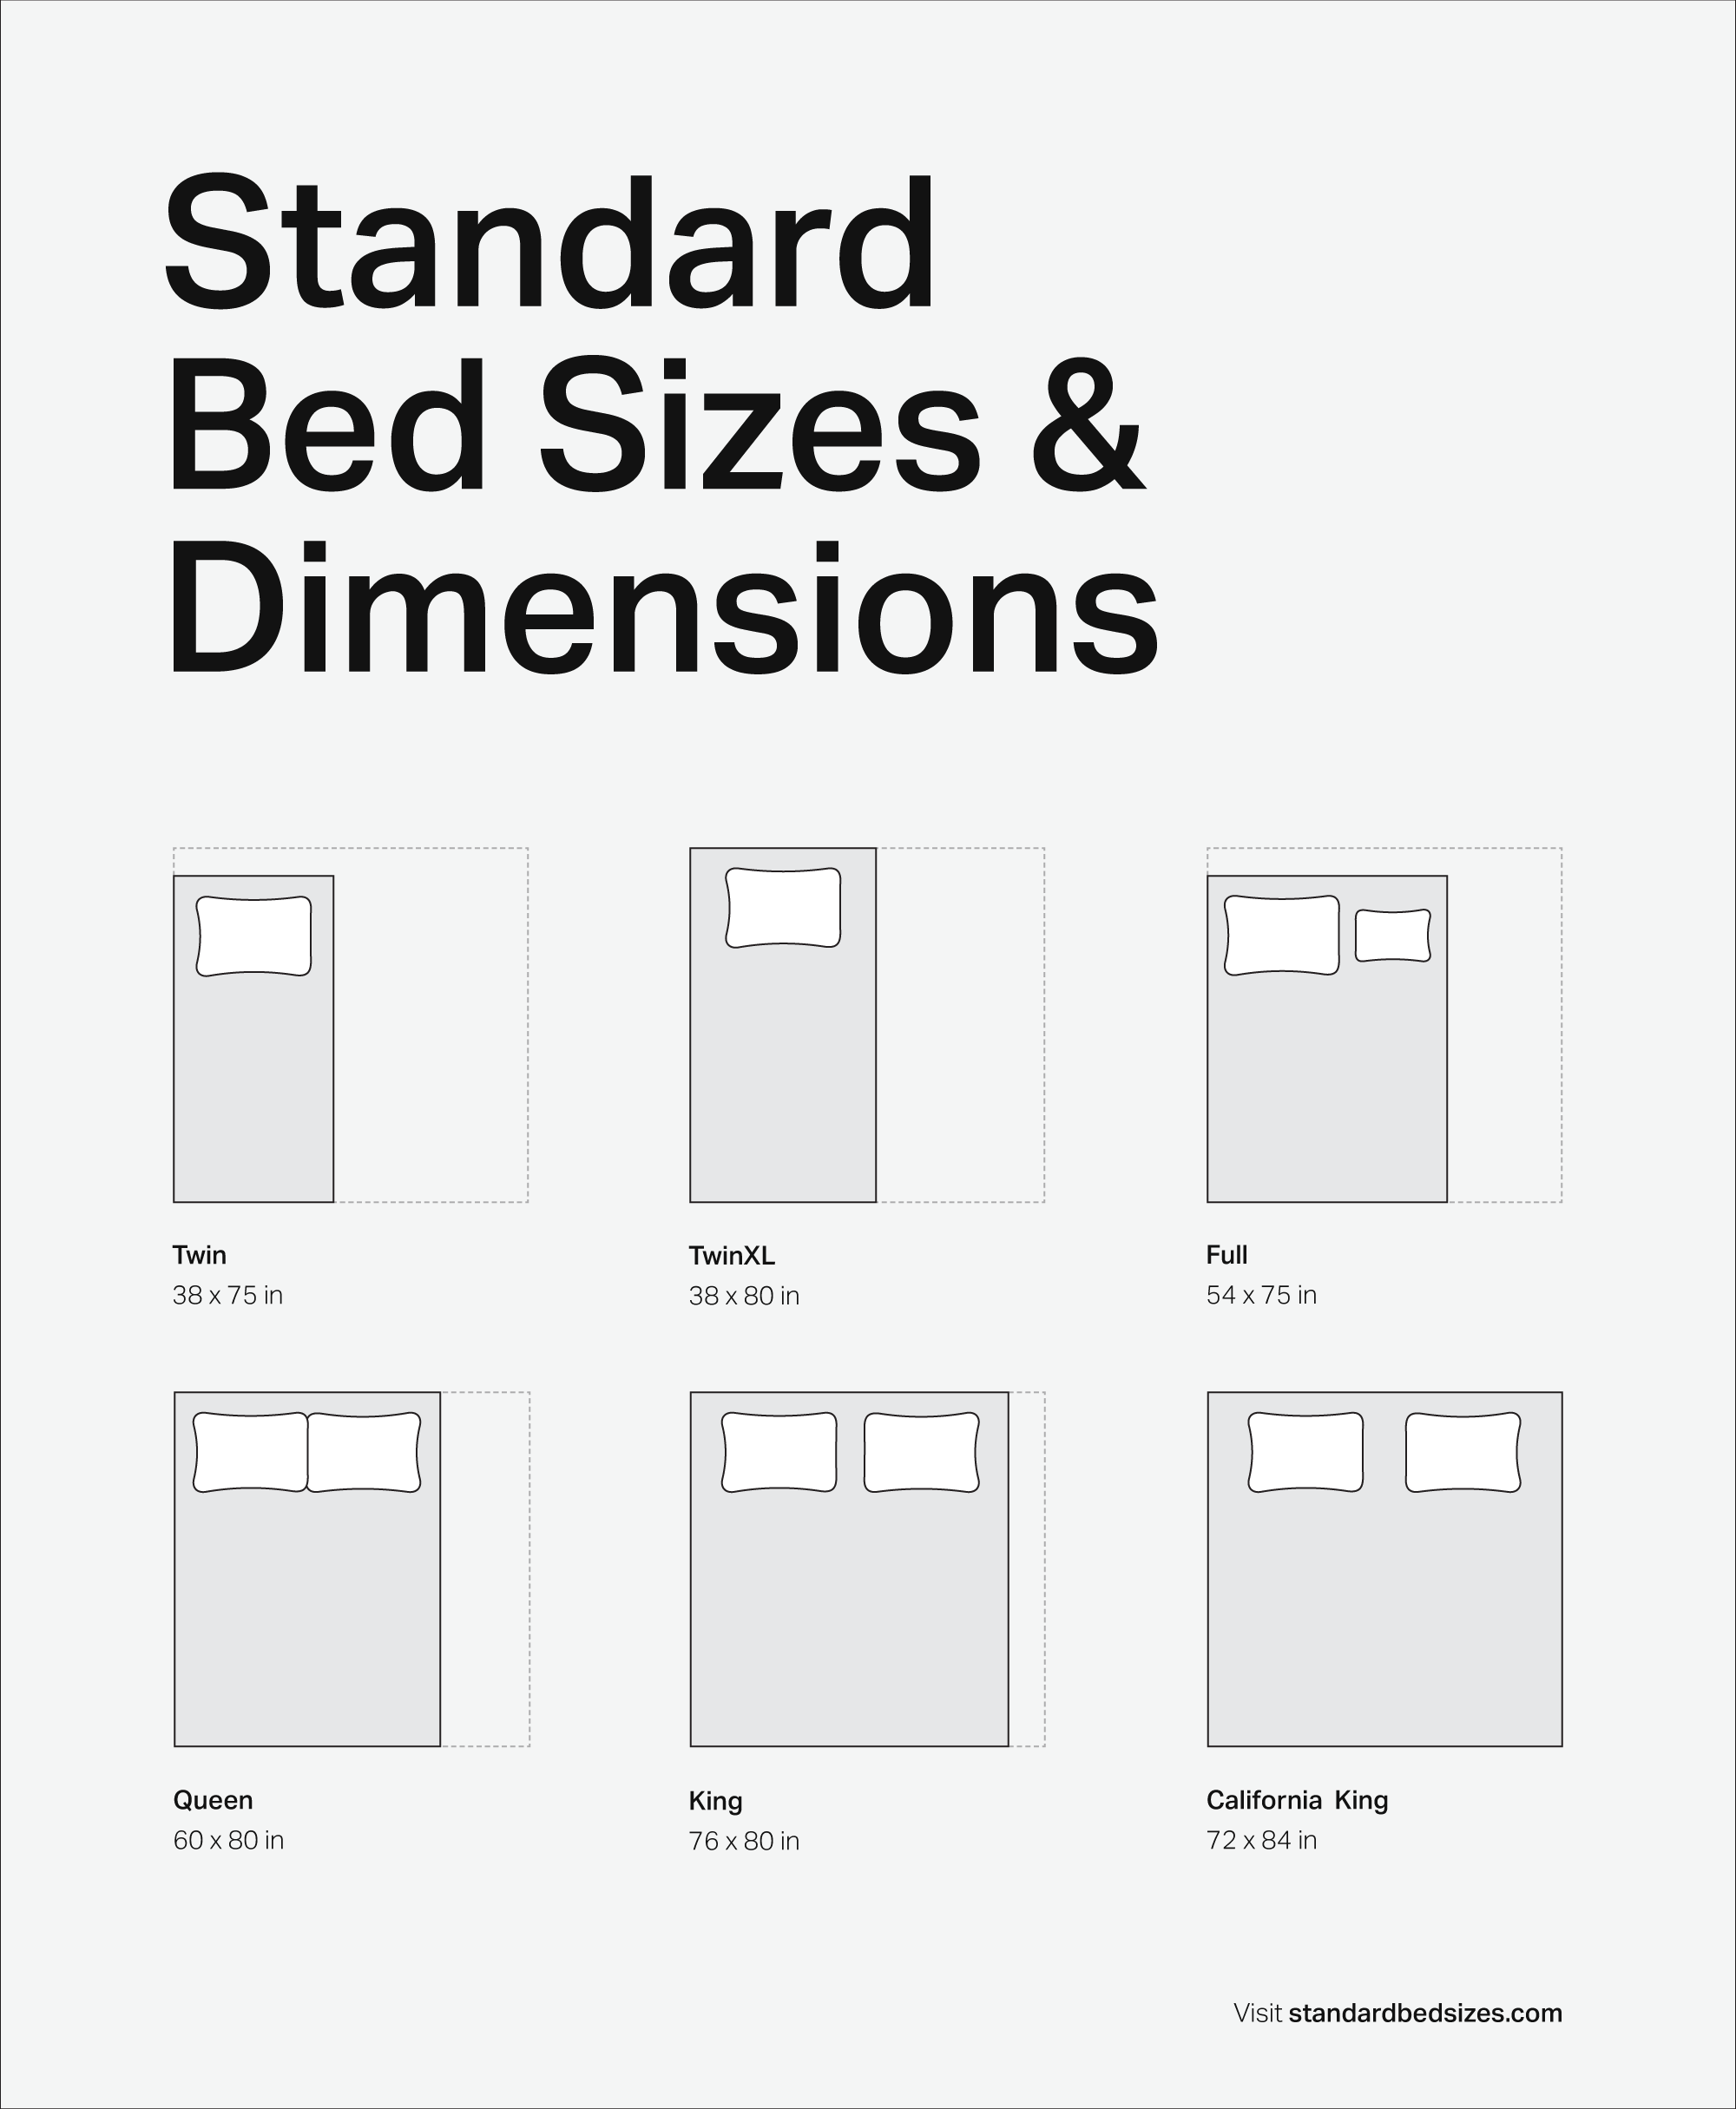 Bed Sizes & Dimensions Guide | Standardbedsizes.com